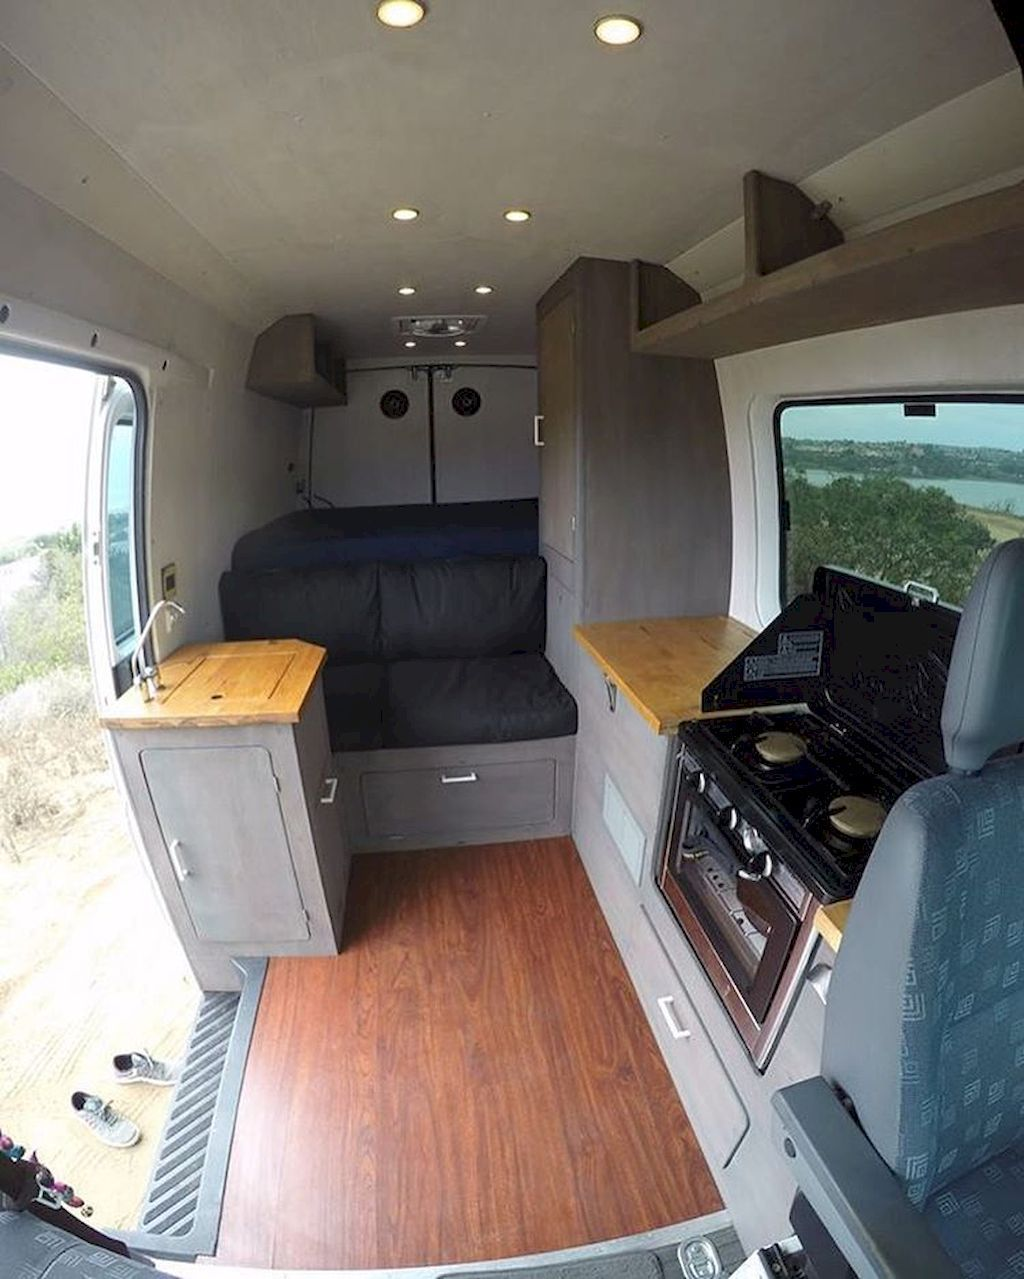 Adorable best rv camper van interior decorating ideas